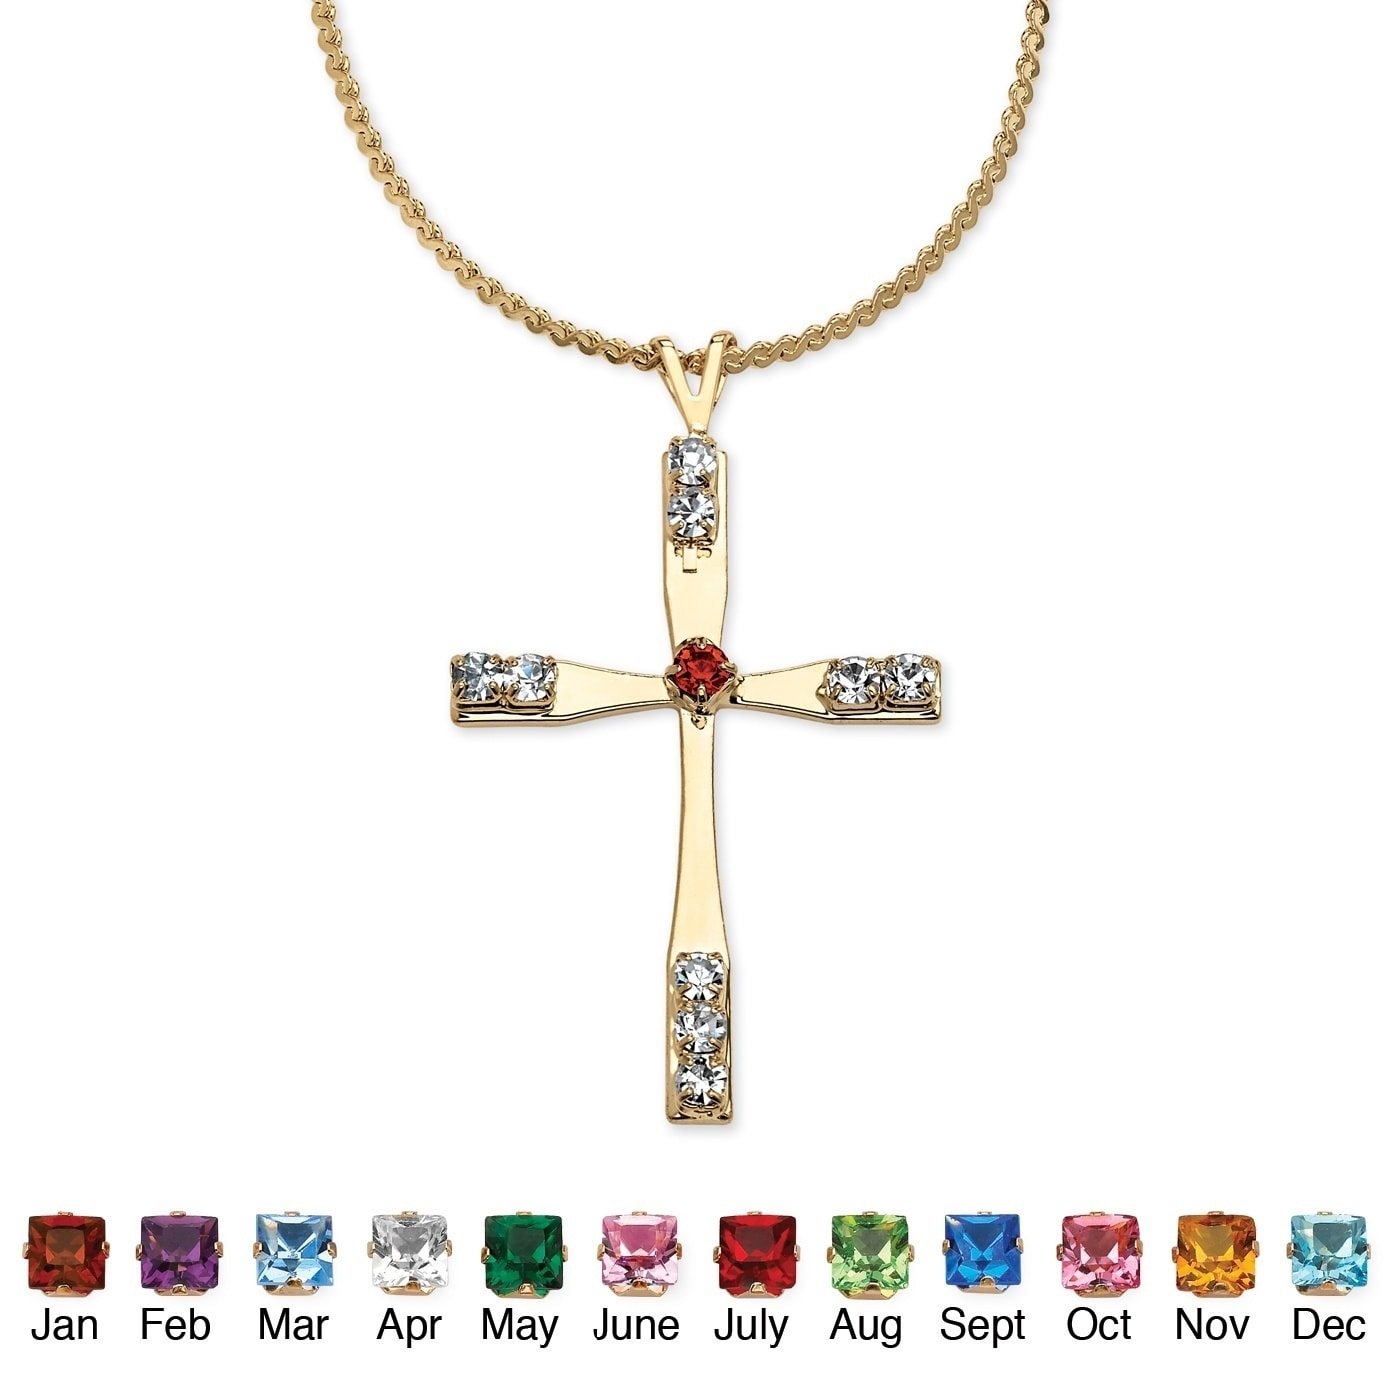 Palm Beach Birthstone Cross Pendant Necklace in Yellow Go...